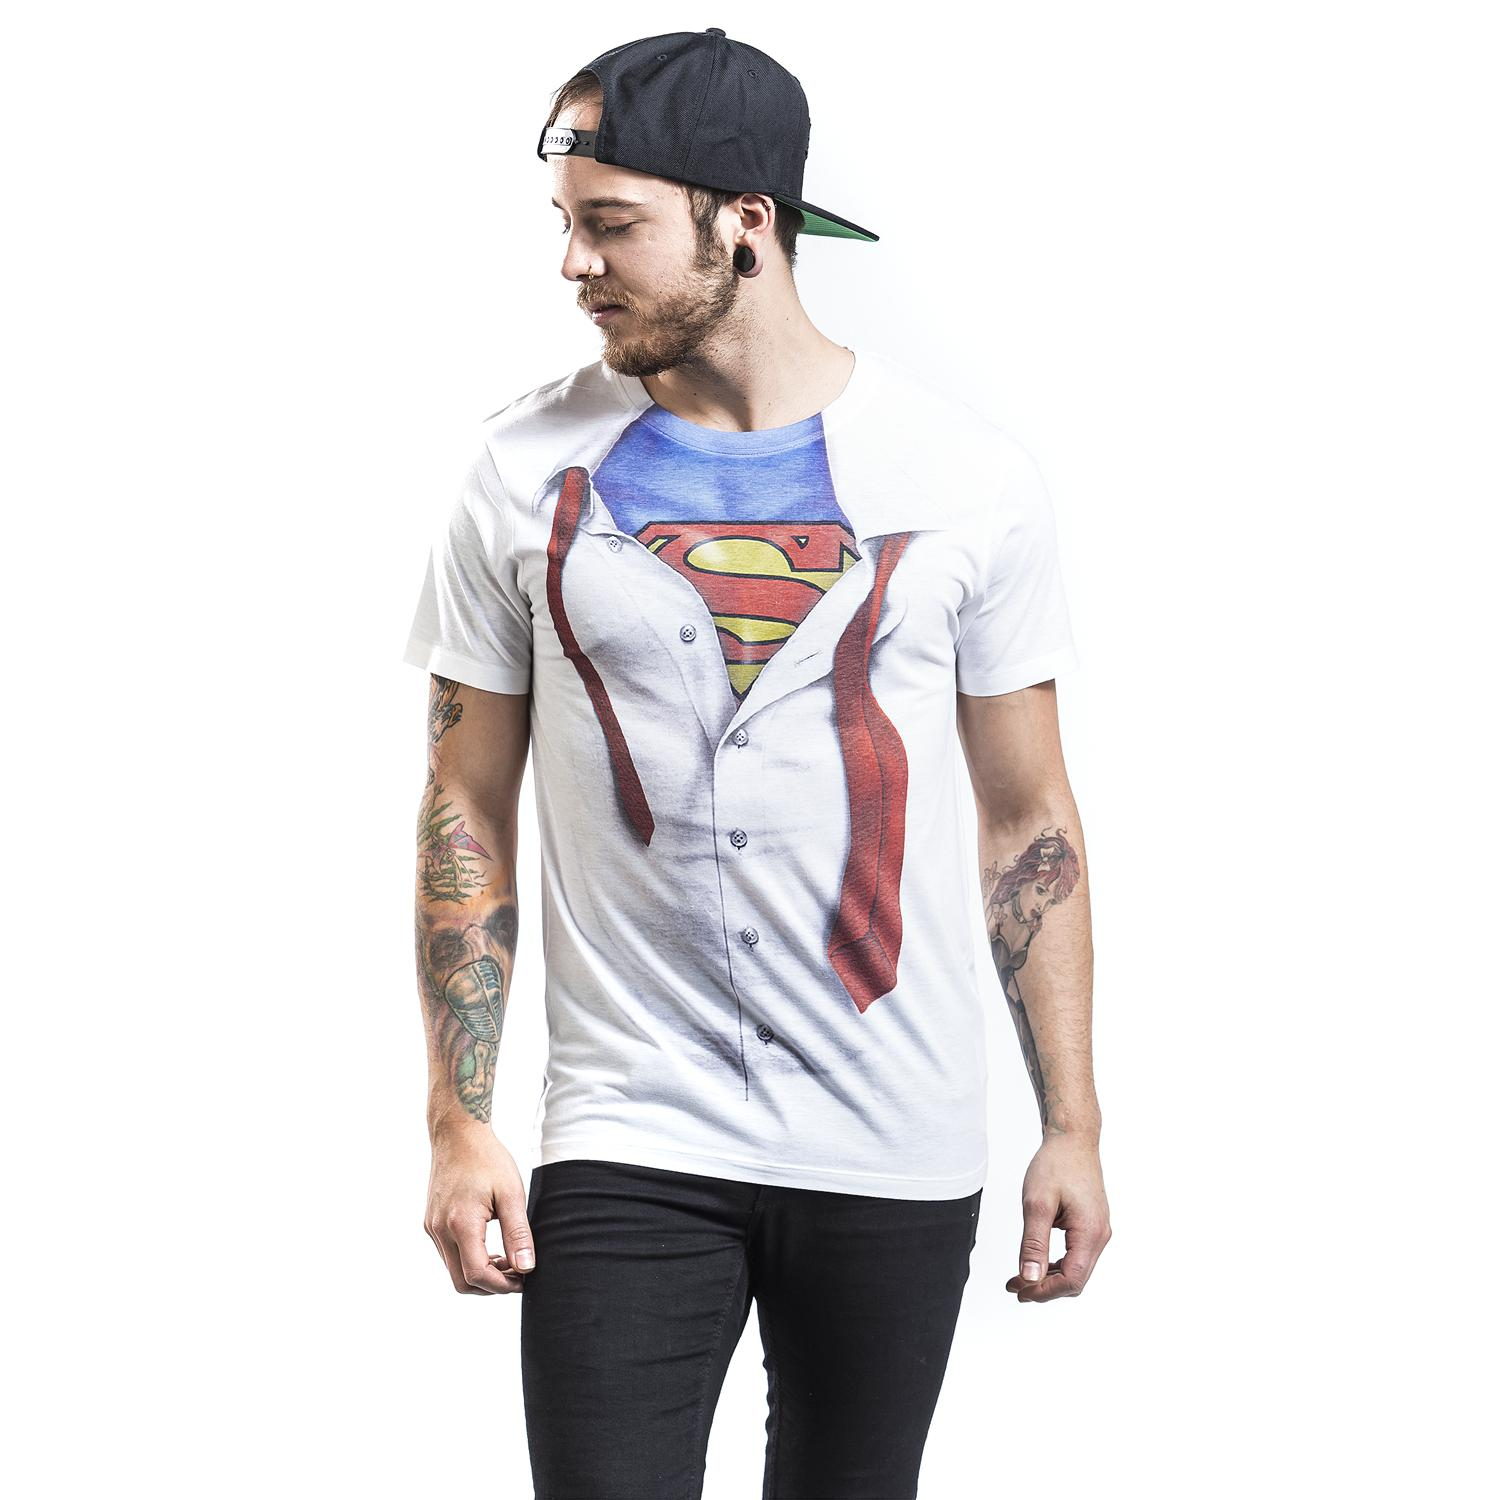 Superman T-shirt Design man